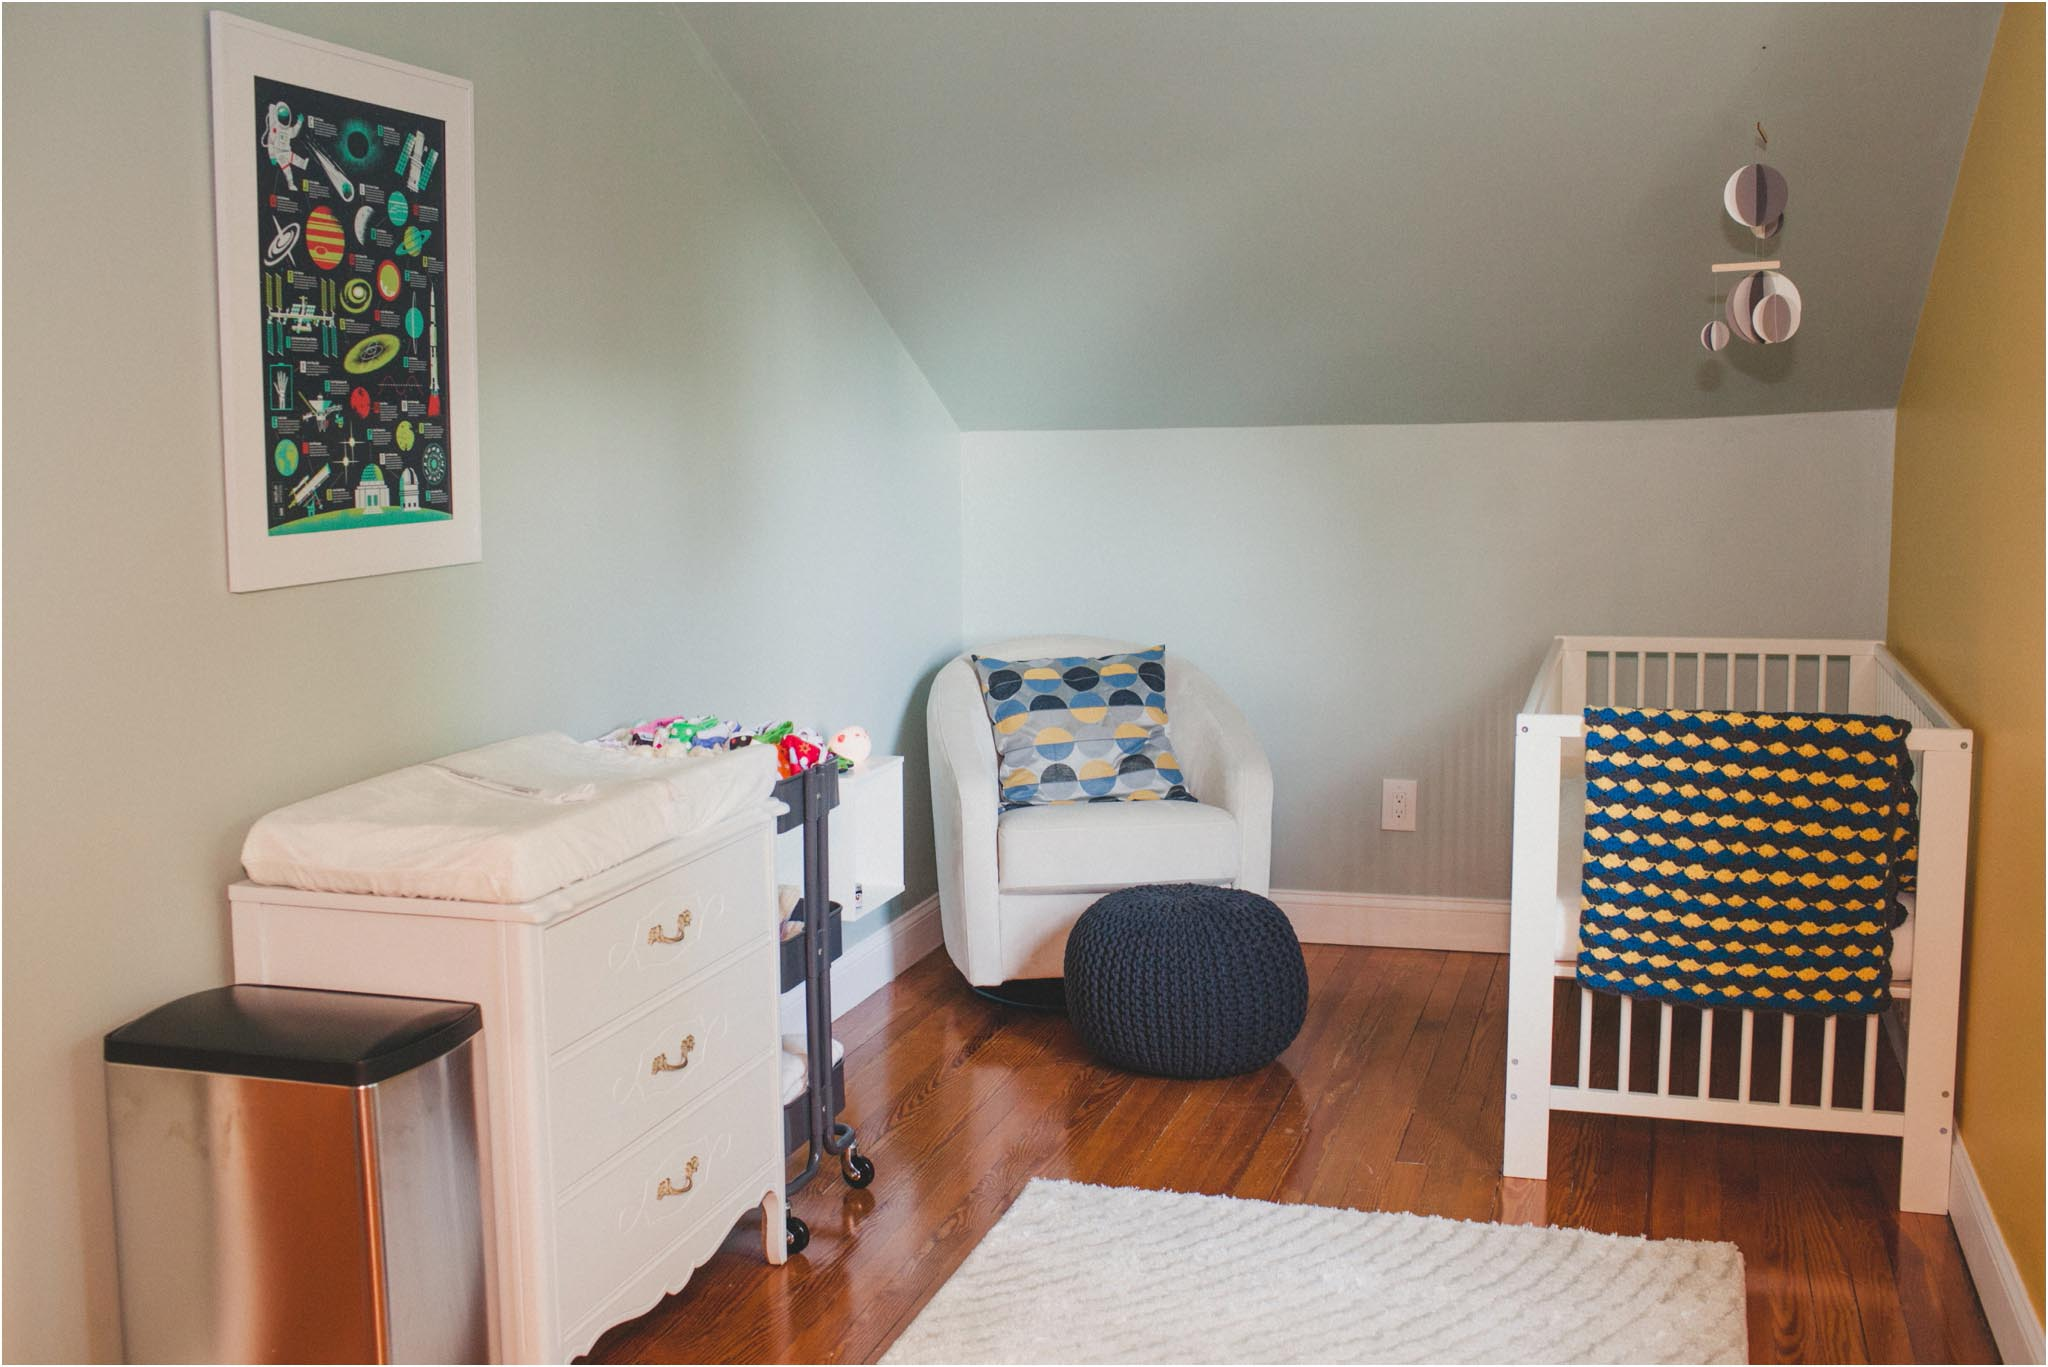 Room tour an outer space inspired nursery shannon for Outer space decor for nursery